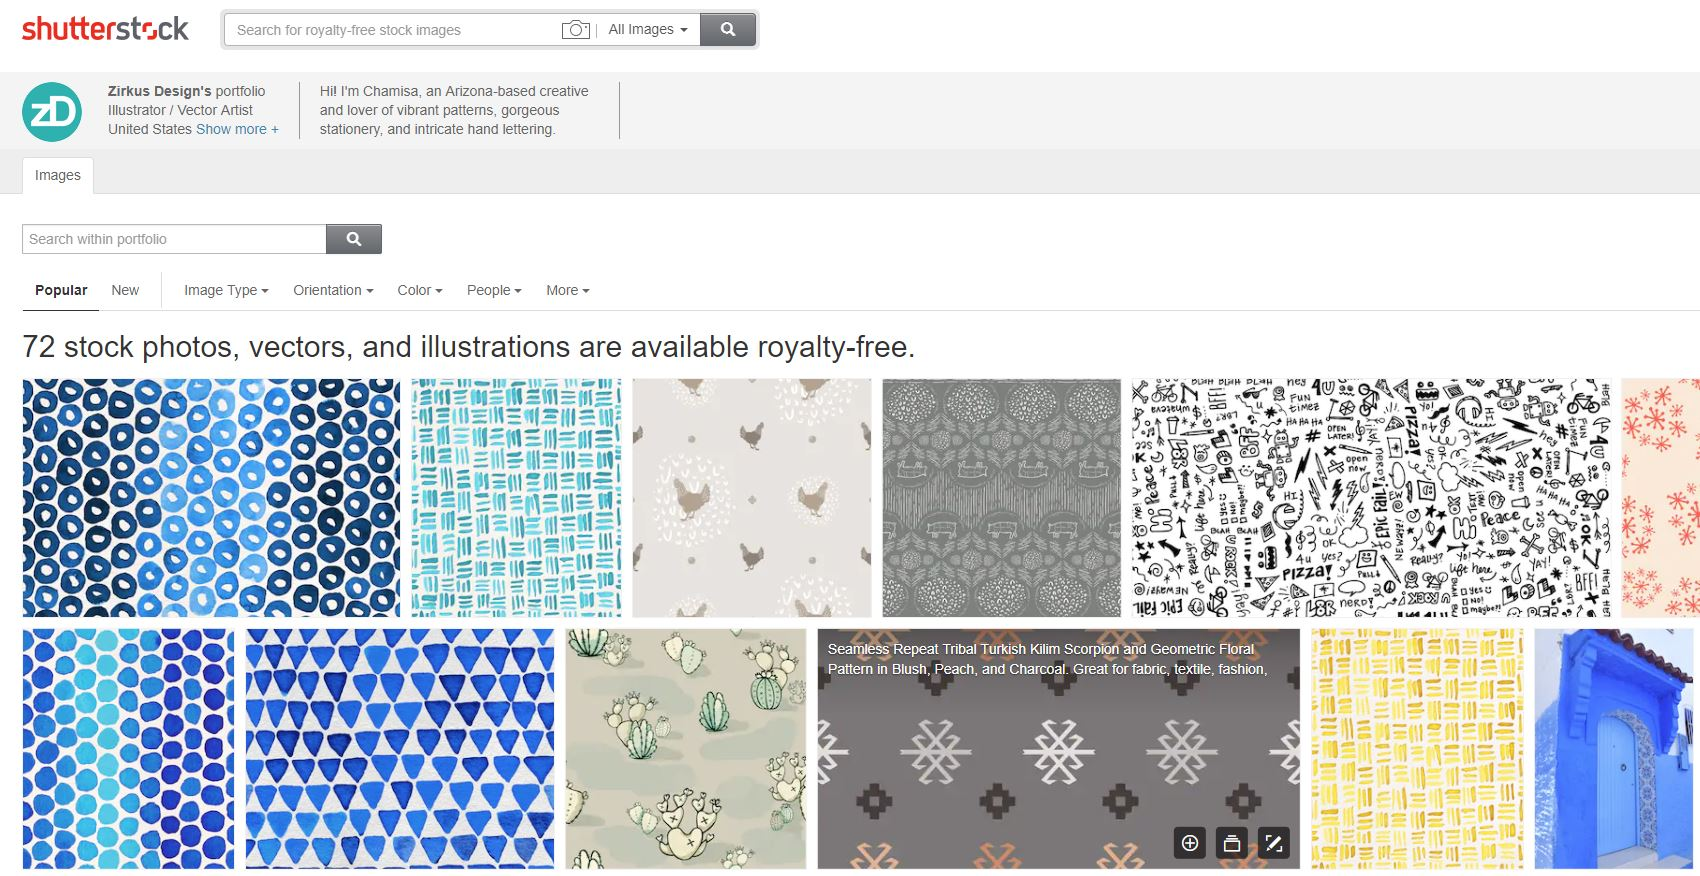 Zirkus Design | Shutterstock Shop - Patterns, Vectors, and Photography